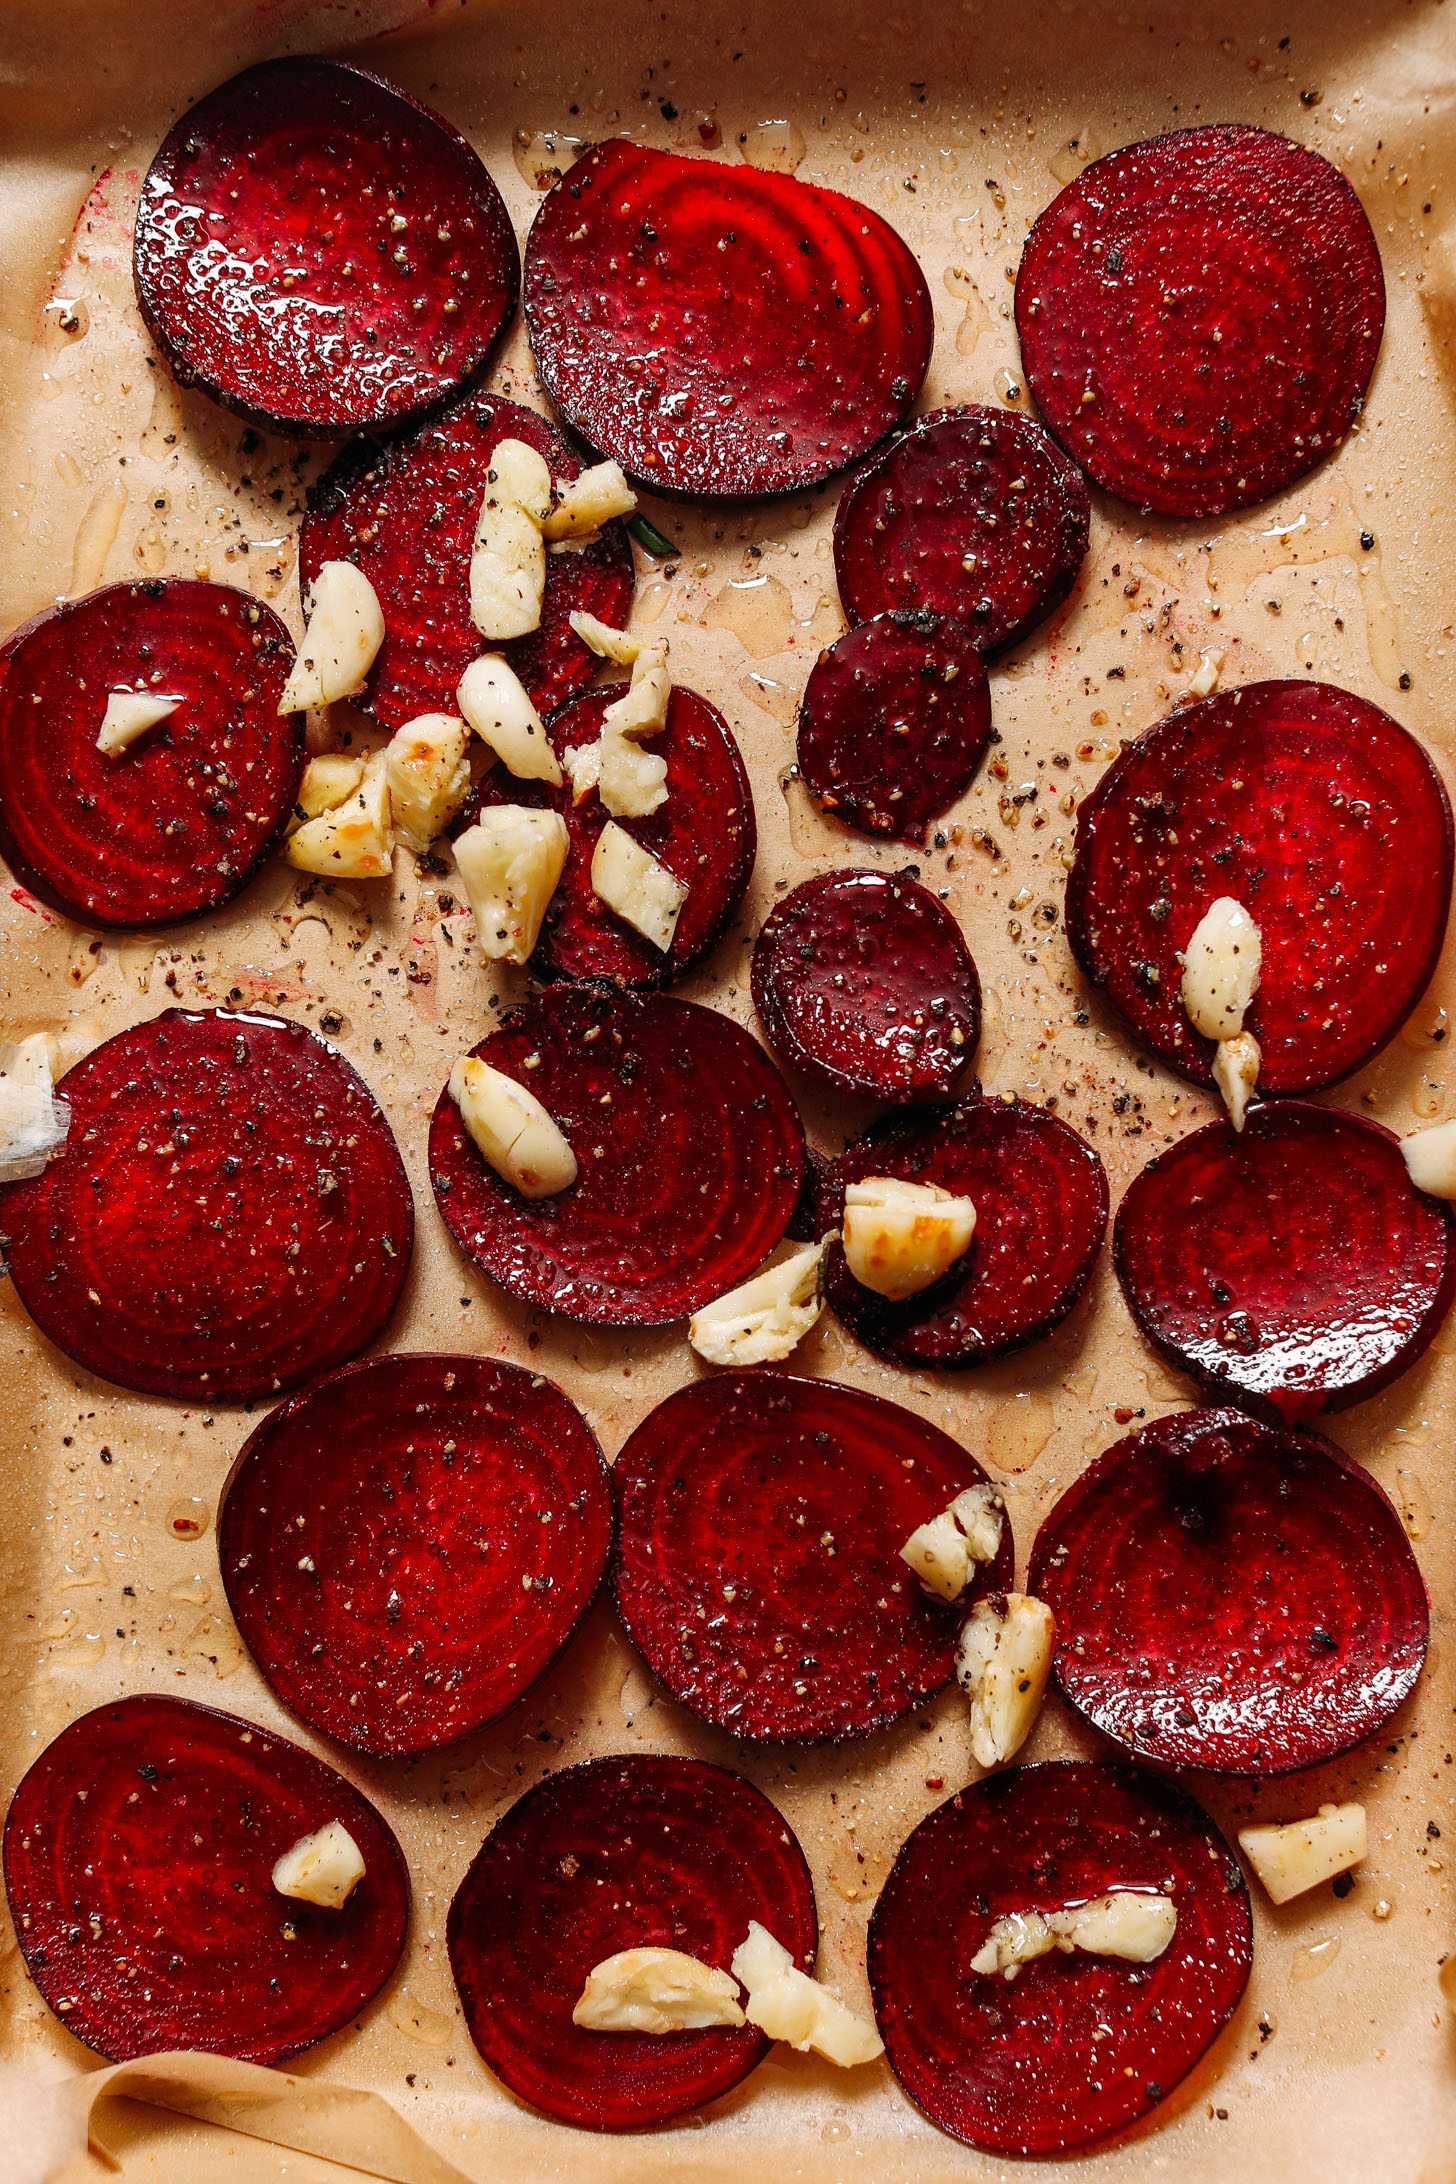 Baking sheet of sliced ​​beets and roasting garlic